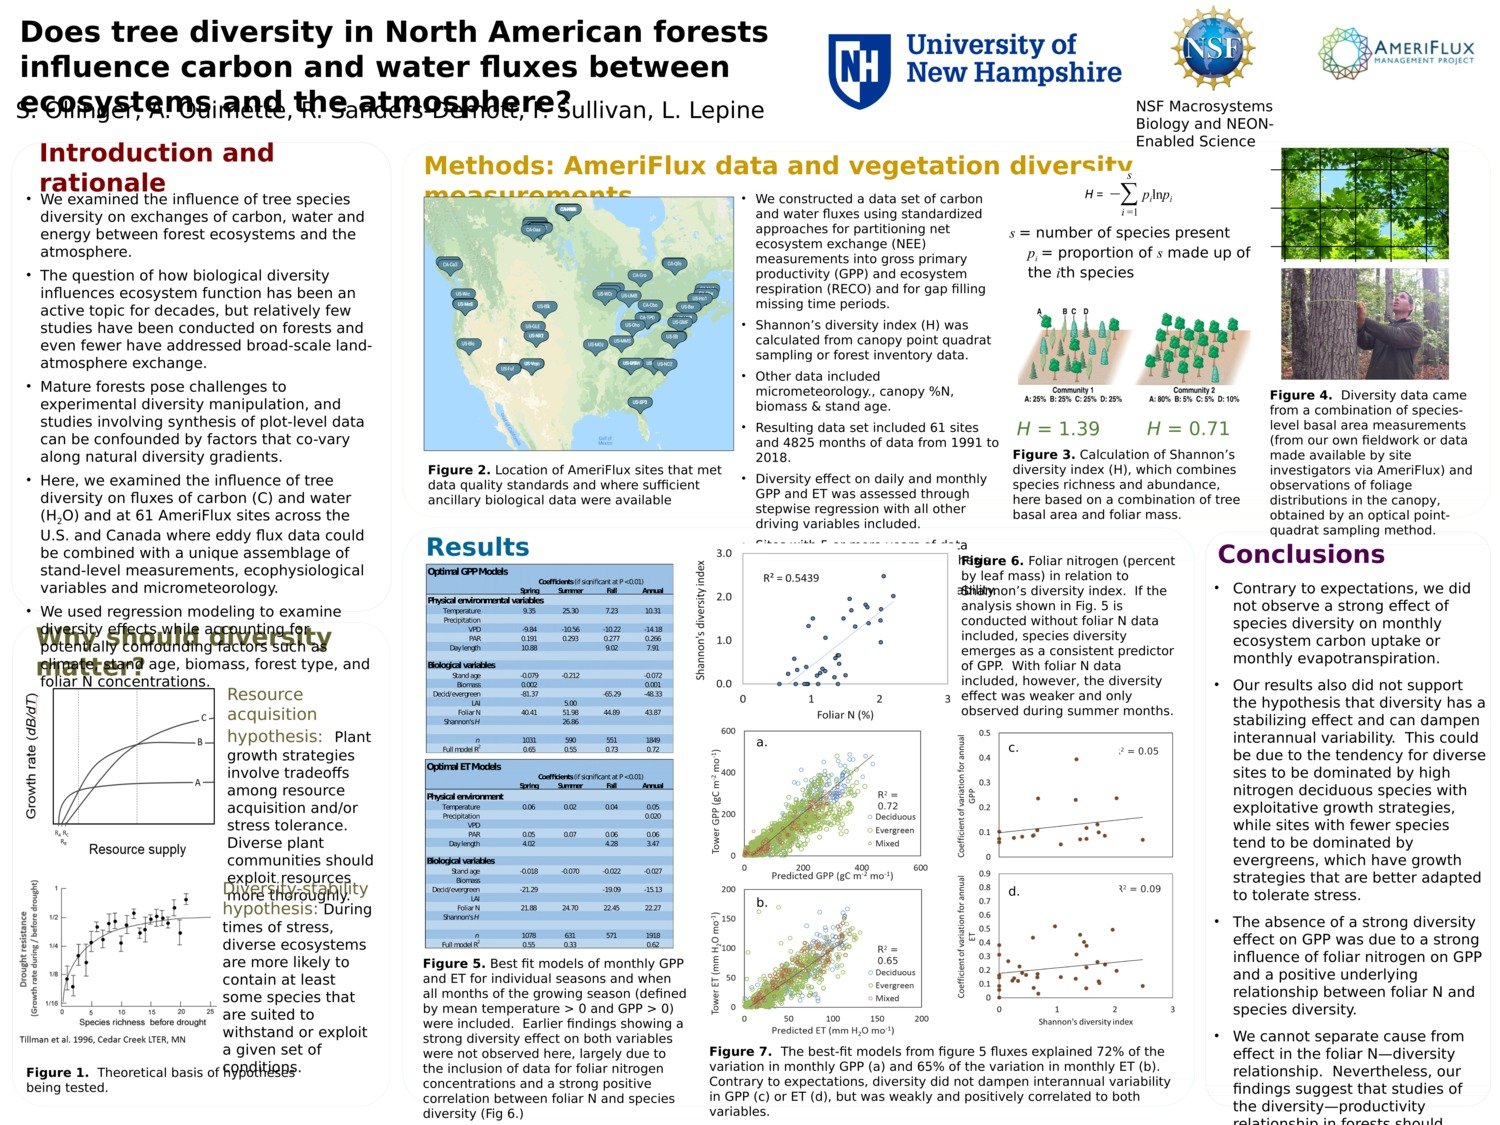 Does Tree Diversity In North American Forests Influence Carbon And Water Fluxes Between Ecosystems And The Atmosphere? by svollinger